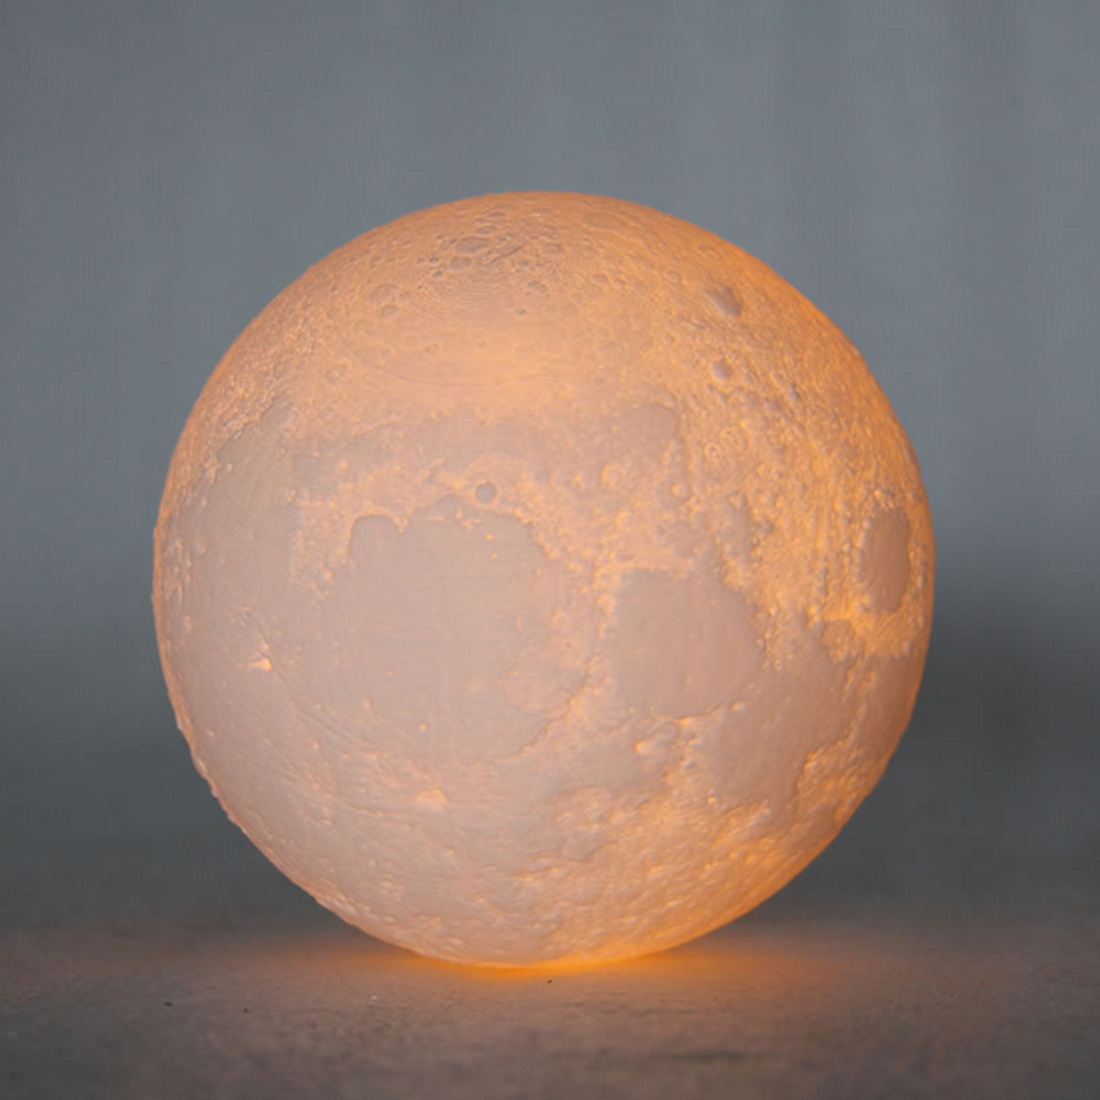 Moon Lamp 3D Magical LED Luna Night Light Desk USB Charging 2 Color Change Touch Control Home Decor Creative Gift Rechargeable